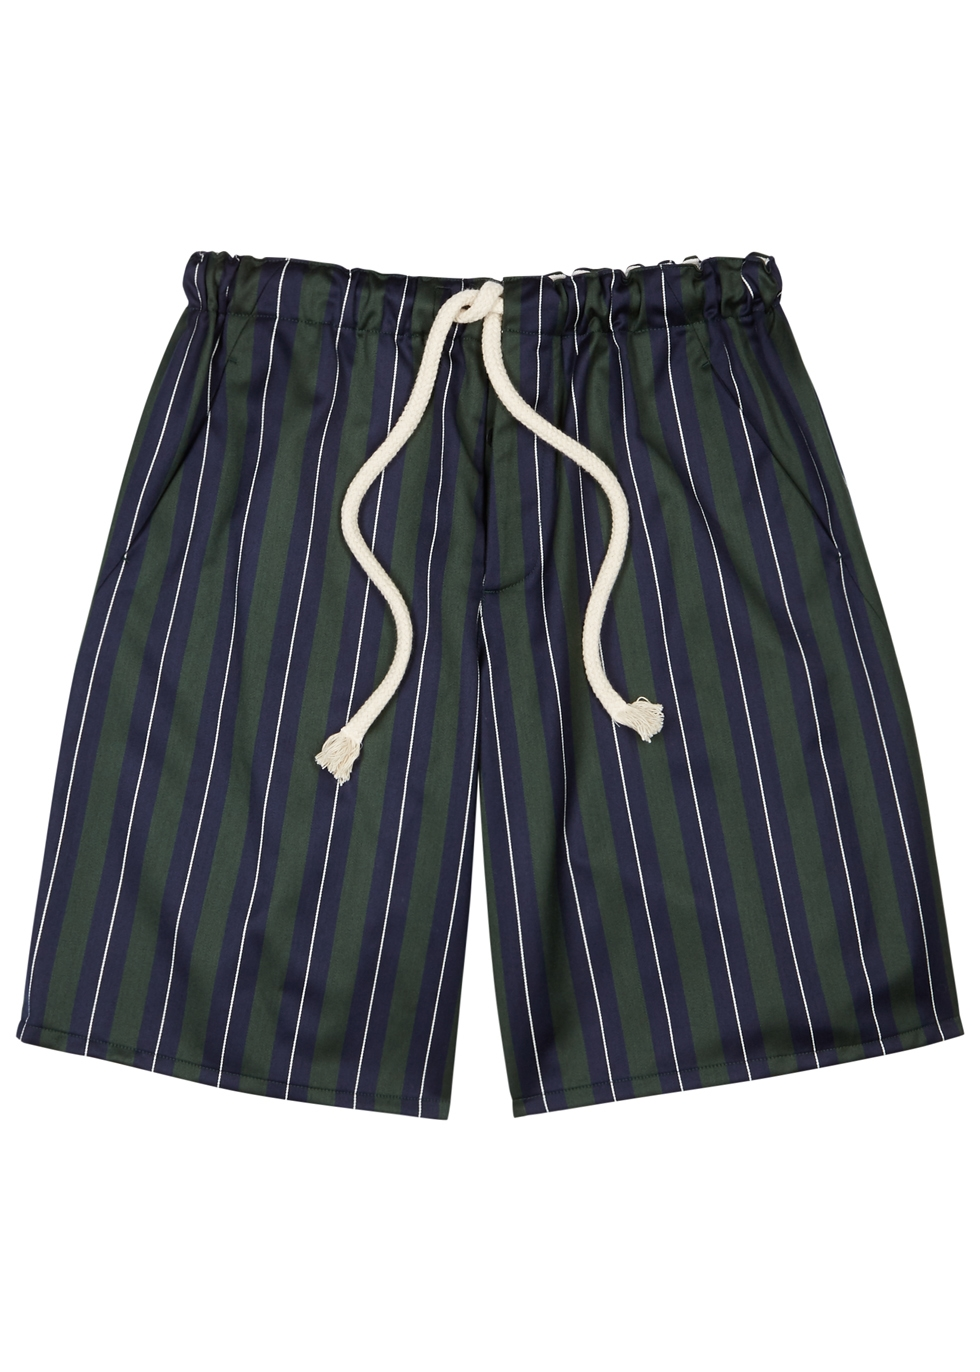 Green Striped Wool-Blend Shorts